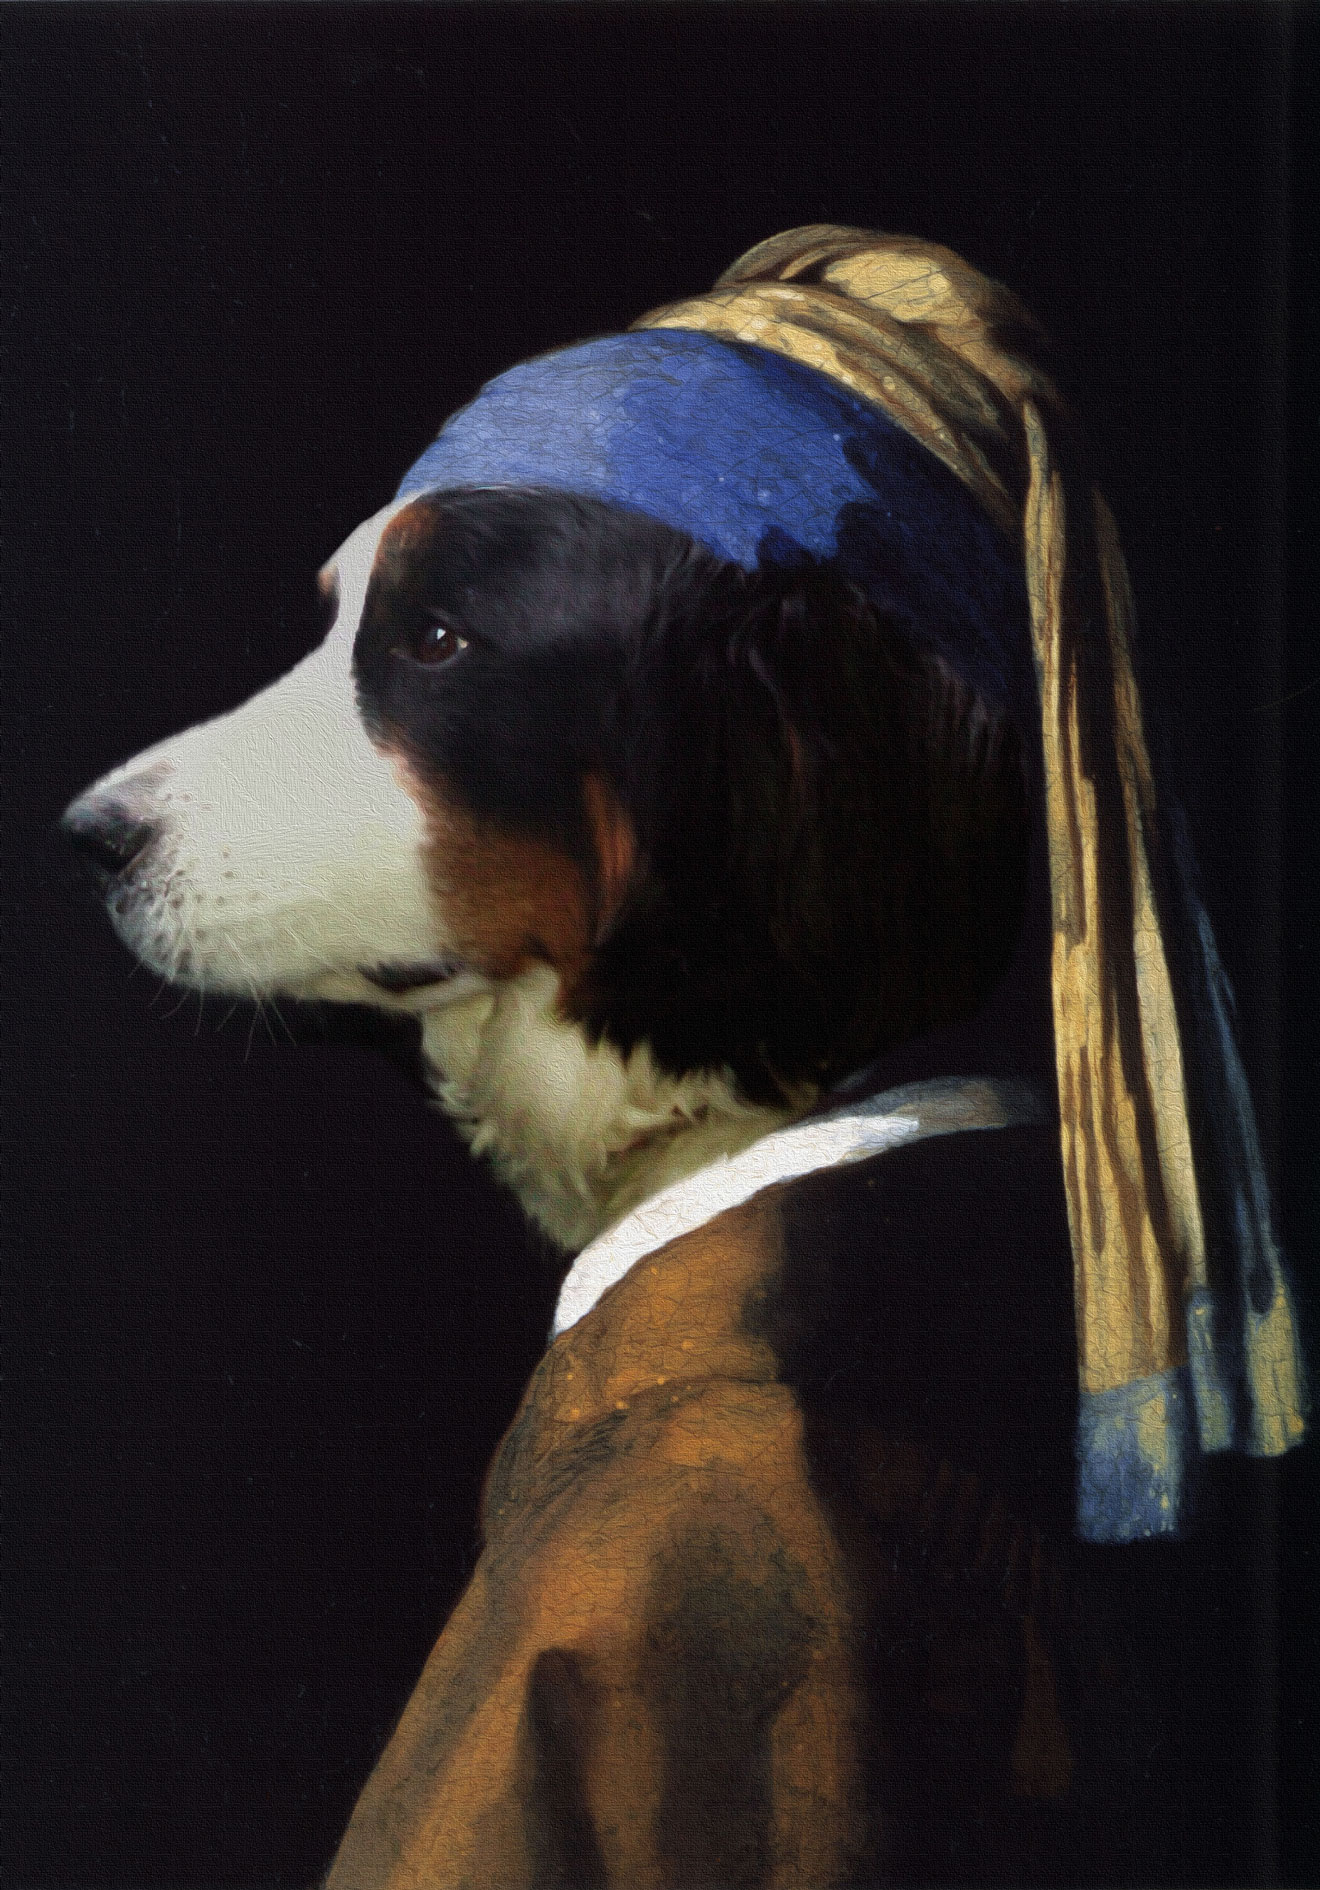 008_Girl-with-the-Pearl-Earring.jpg